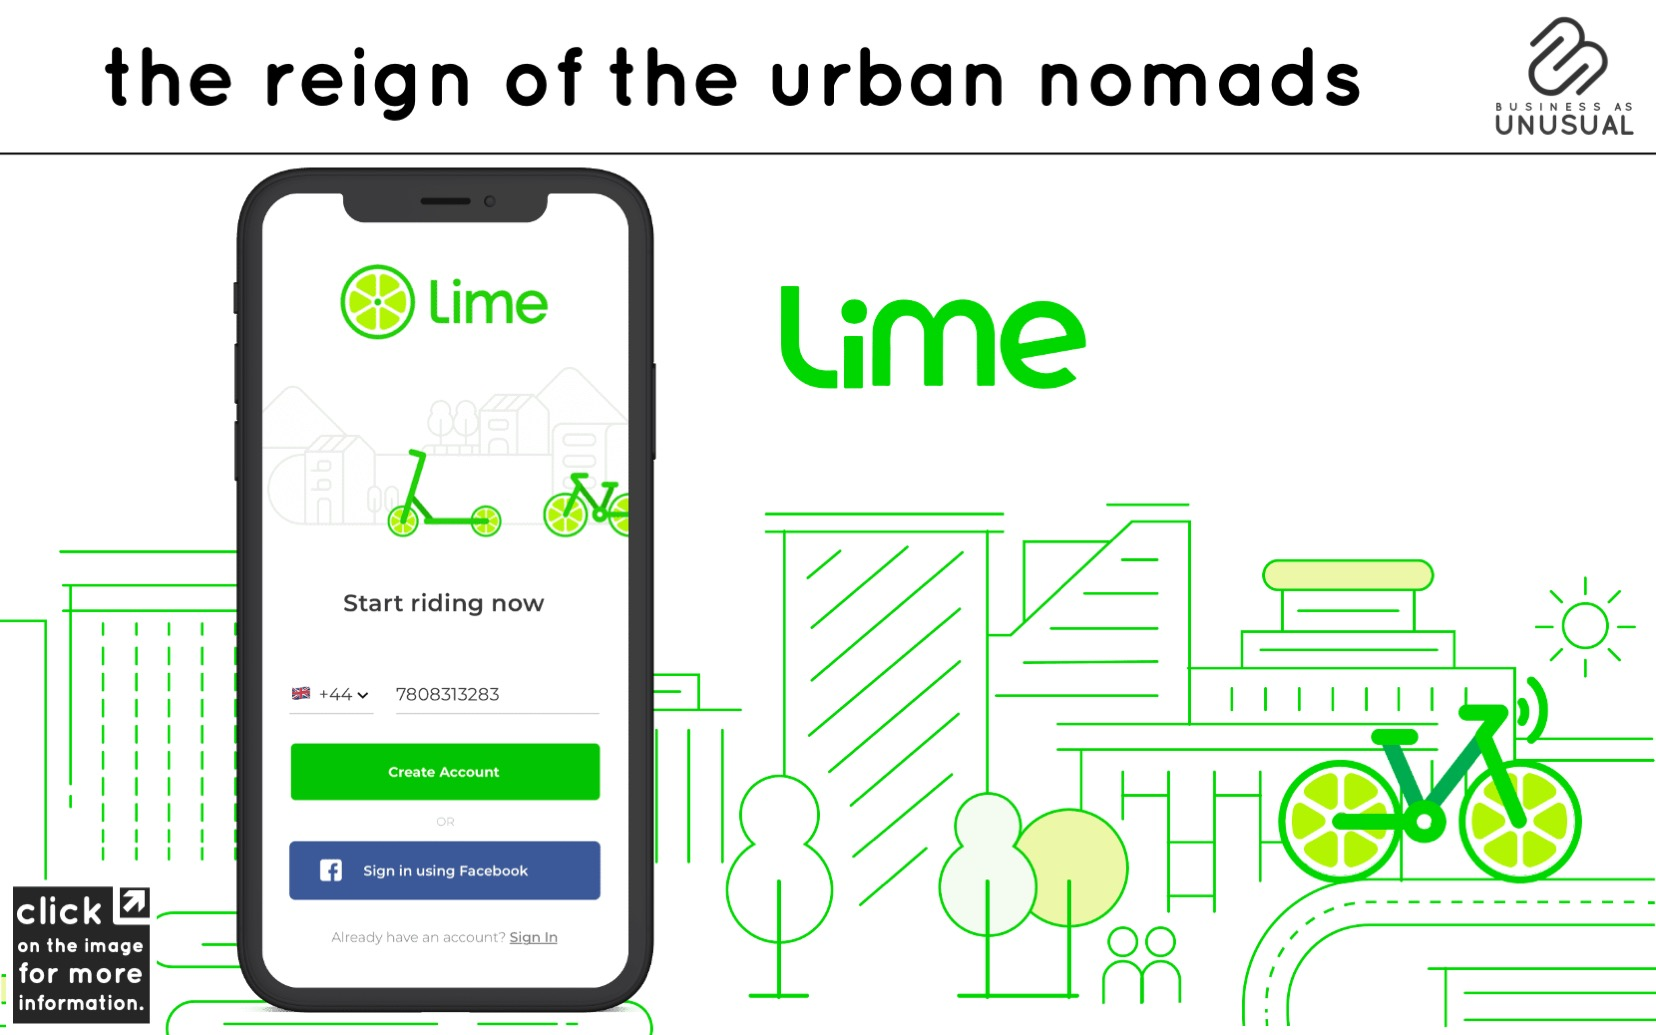 The Reign of the Urban Nomads - Lime